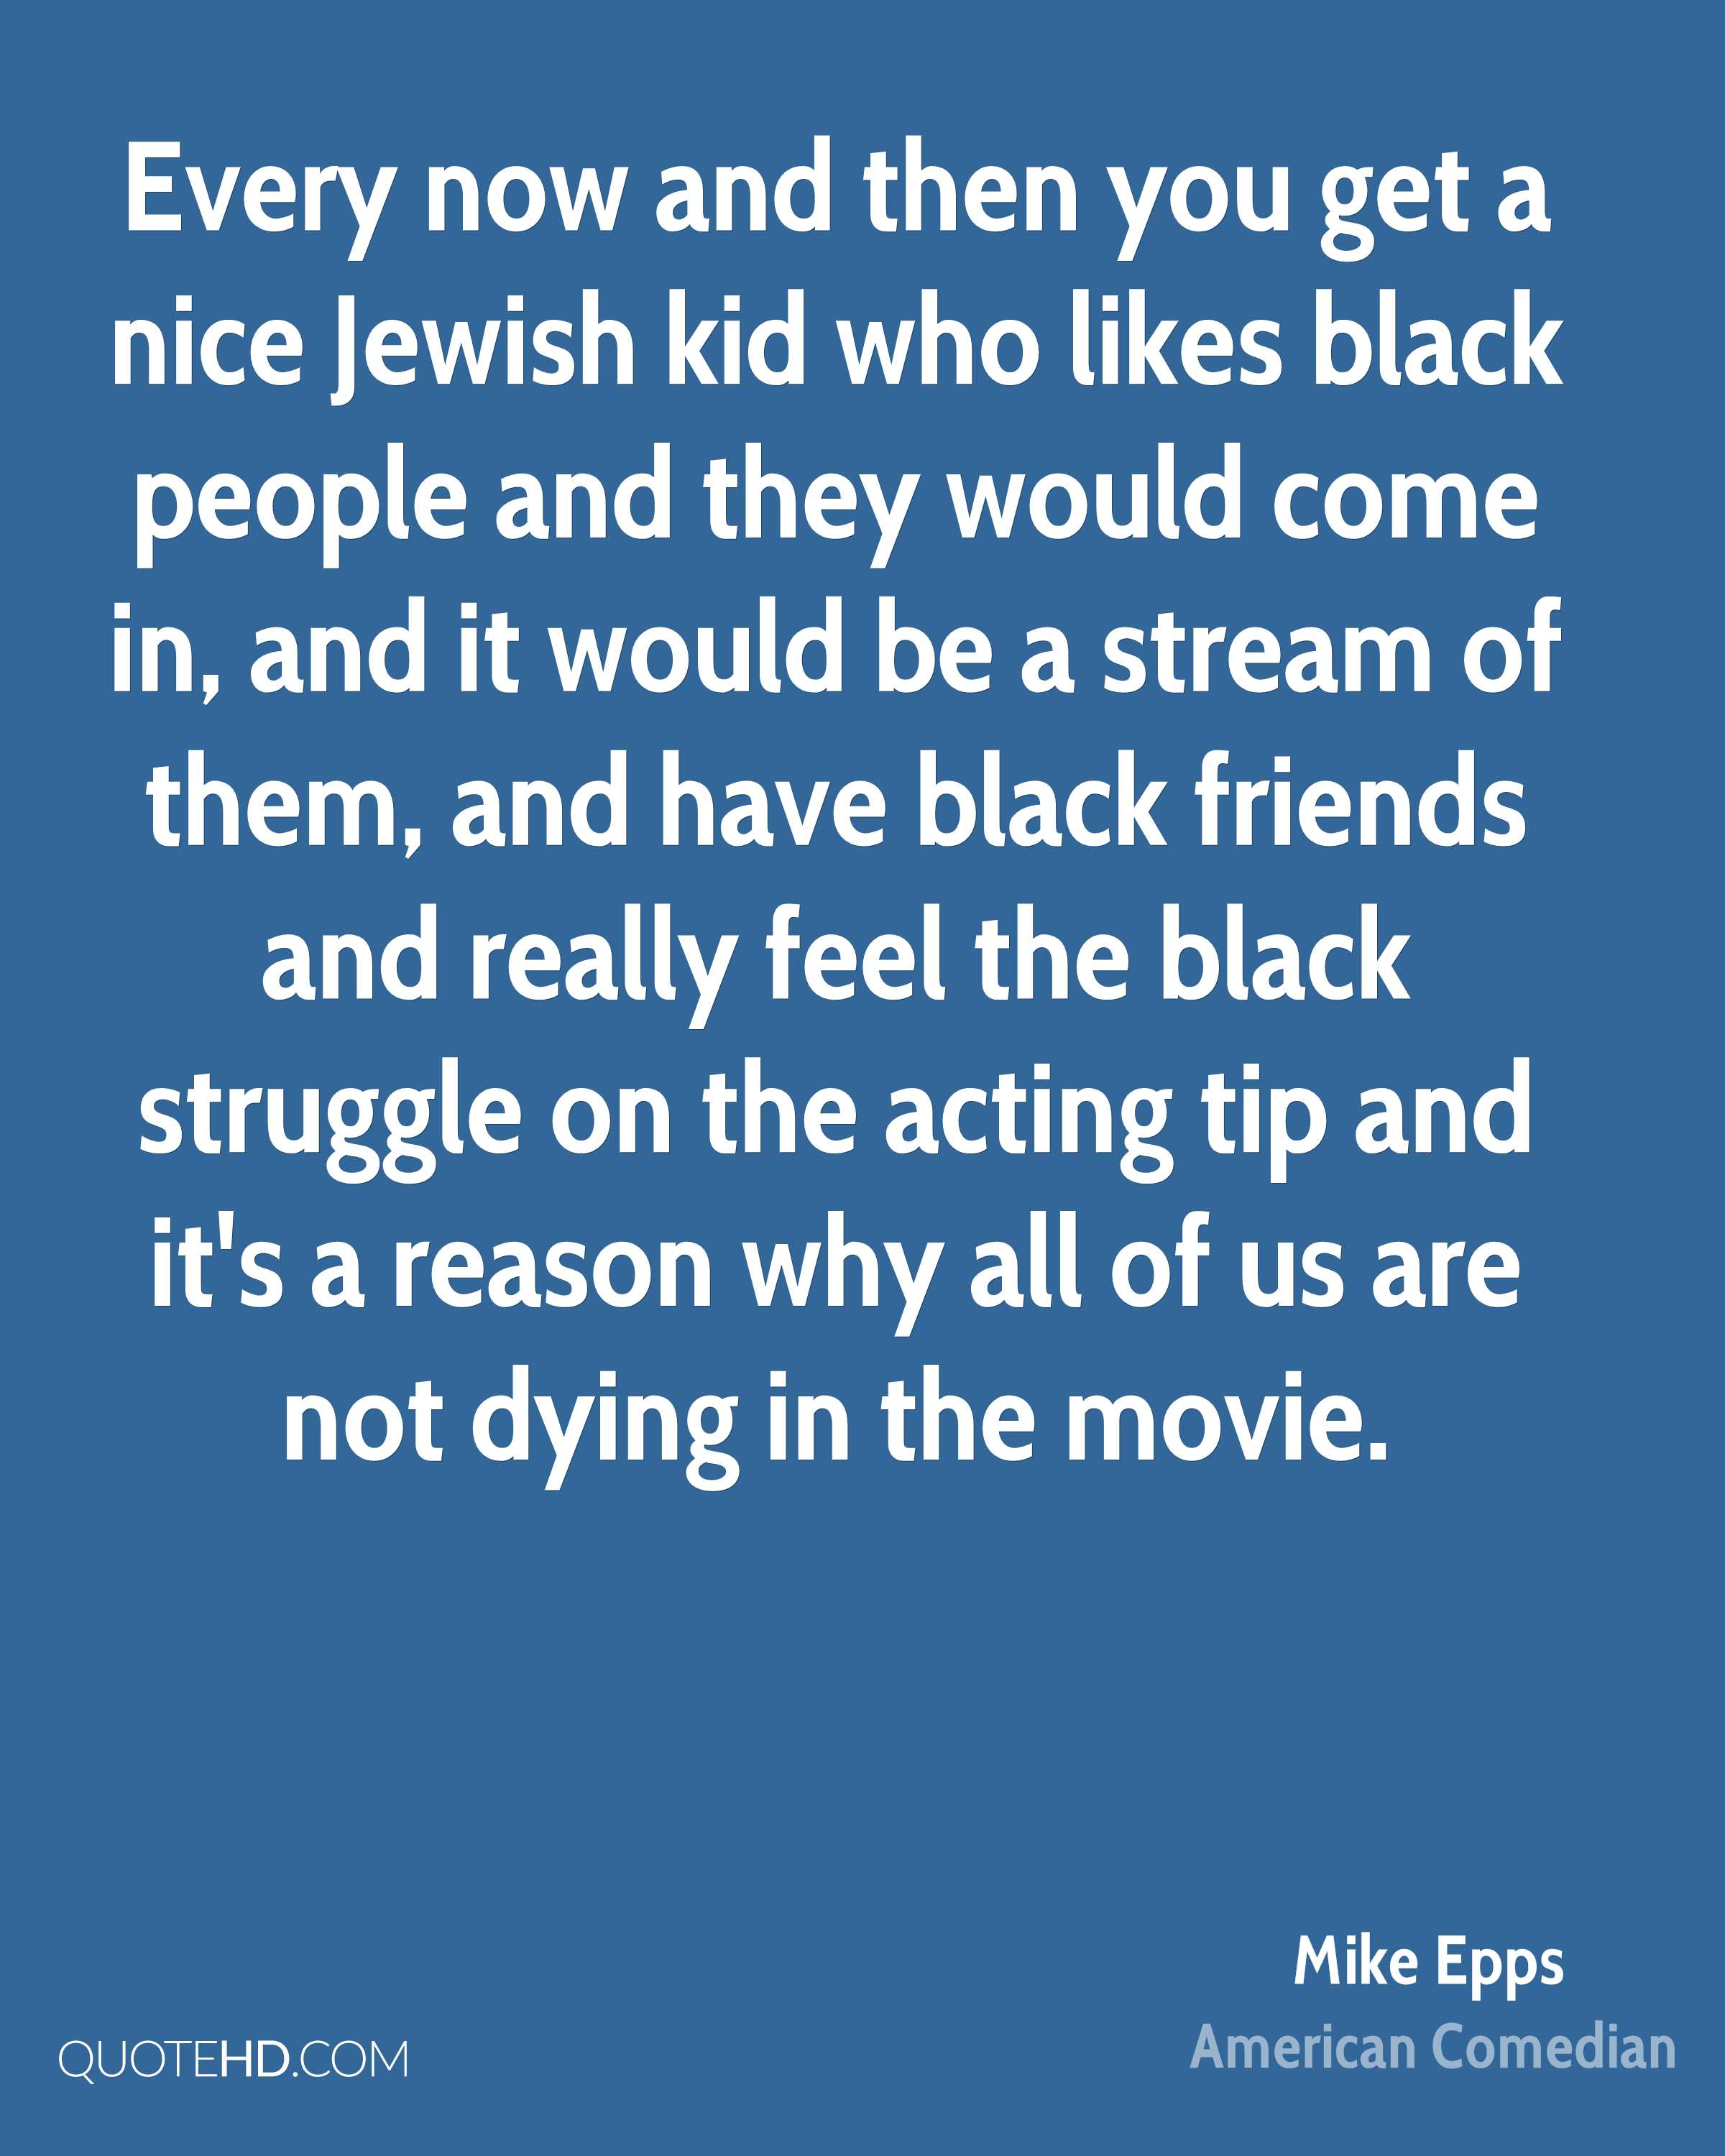 Every now and then you get a nice Jewish kid who likes black people and they would come in, and it would be a stream of them, and have black friends and really feel the black struggle on the acting tip and it's a reason why all of us are not dying in the movie.